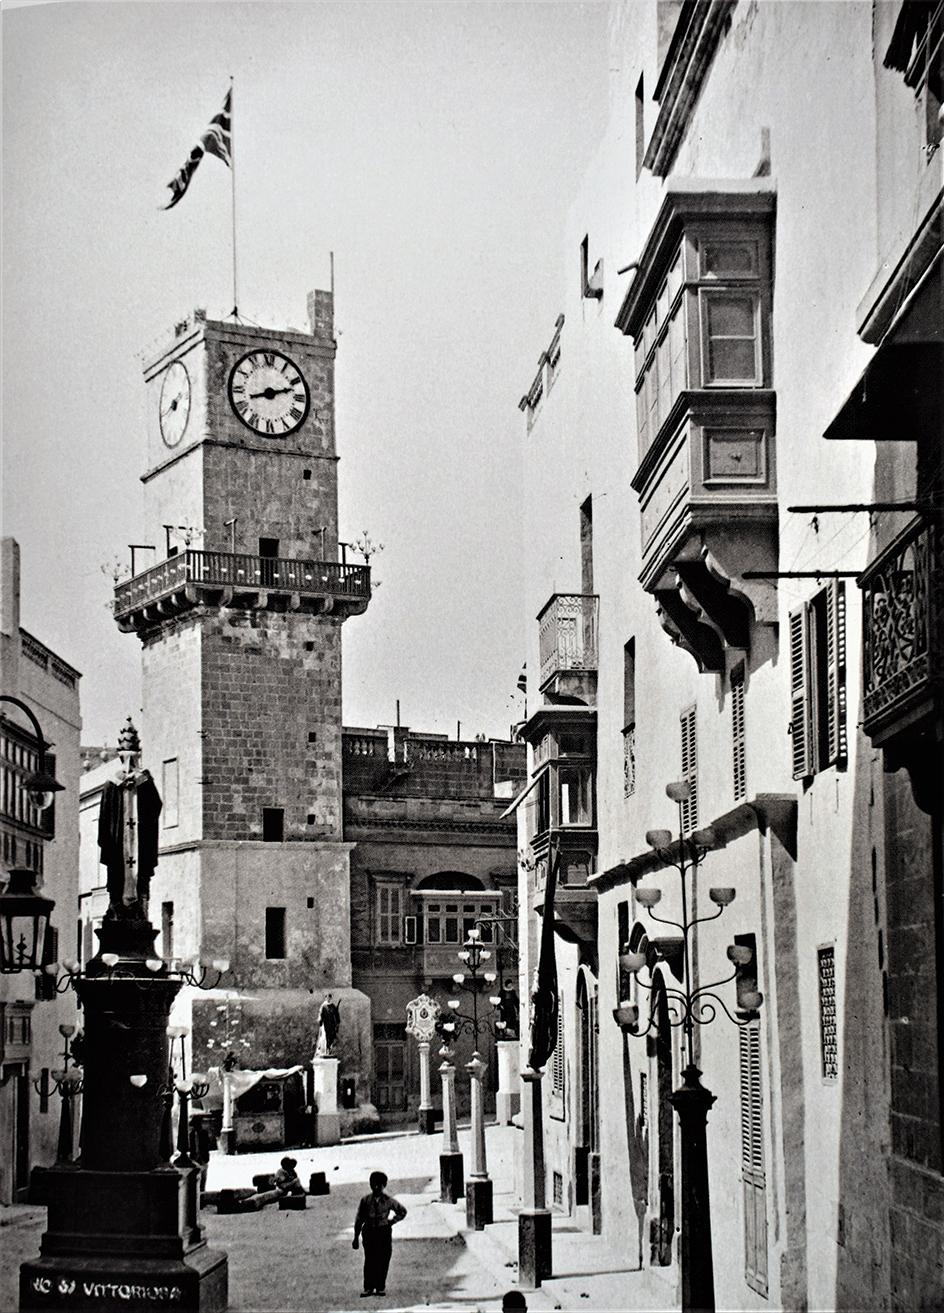 The ancient clock tower in Vittoriosa, which was badly damaged in World War II, shown during a religious festa. Photo: Richard Ellis